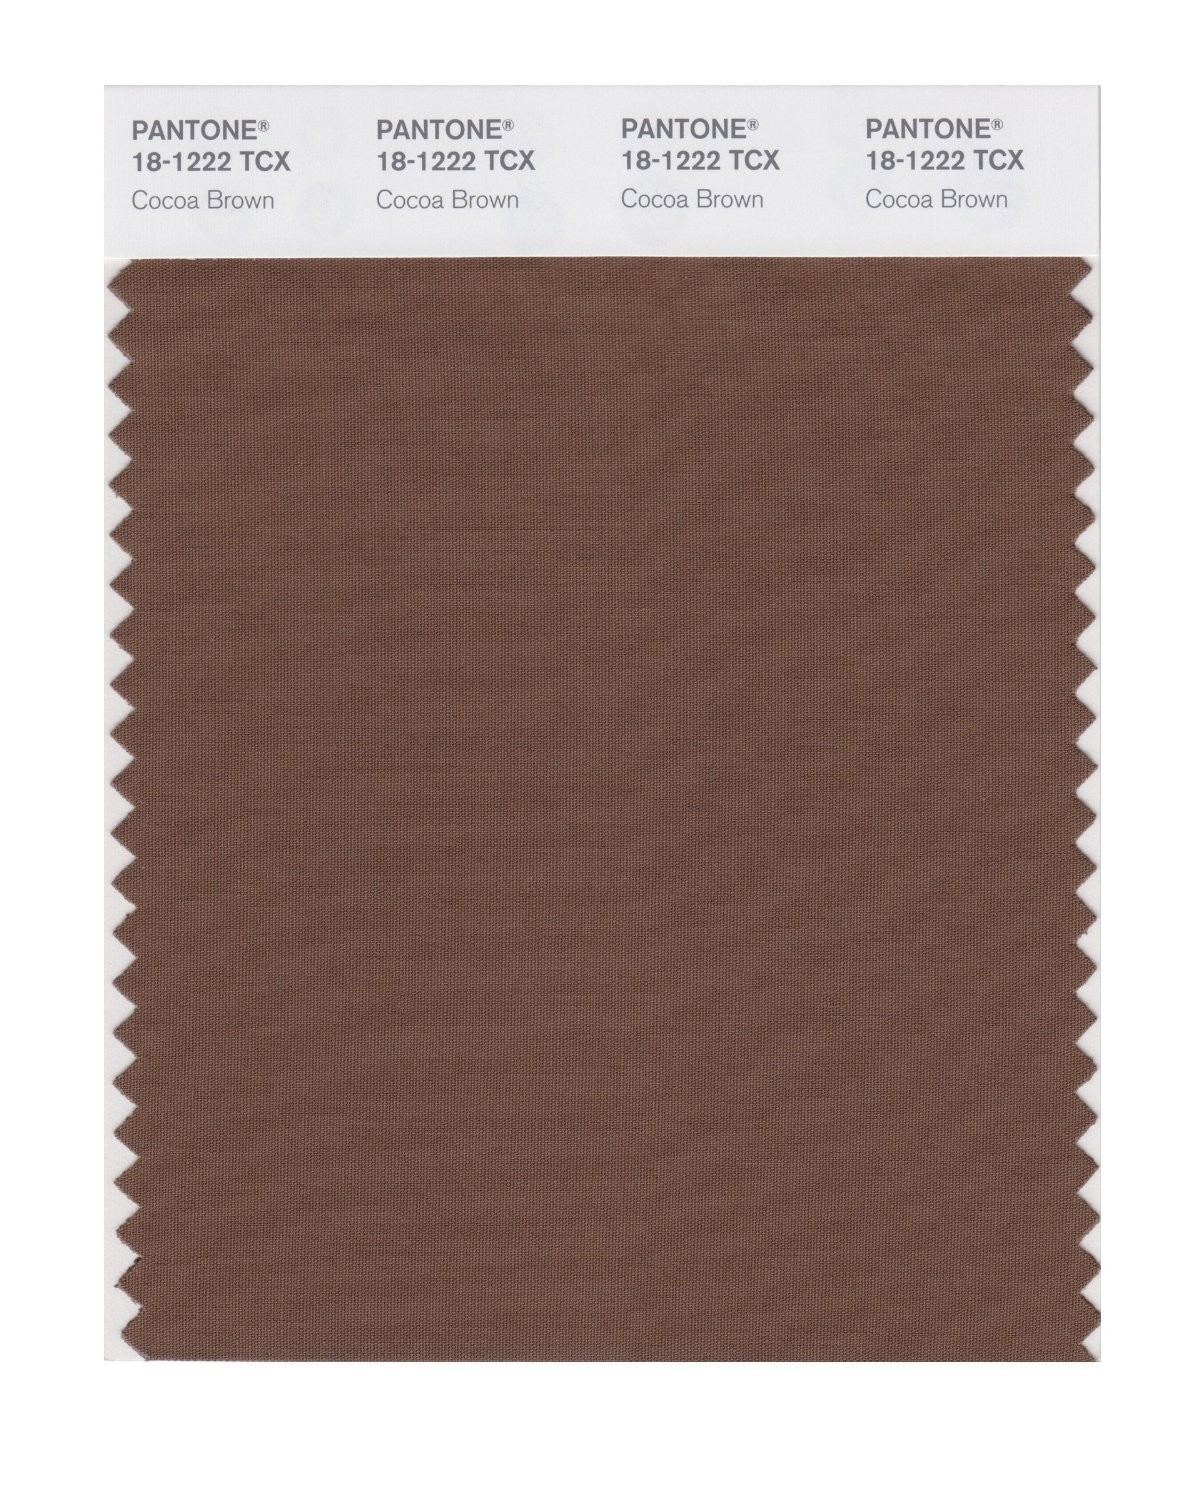 Pantone 18-1222 TCX Swatch Card Cocoa Brown